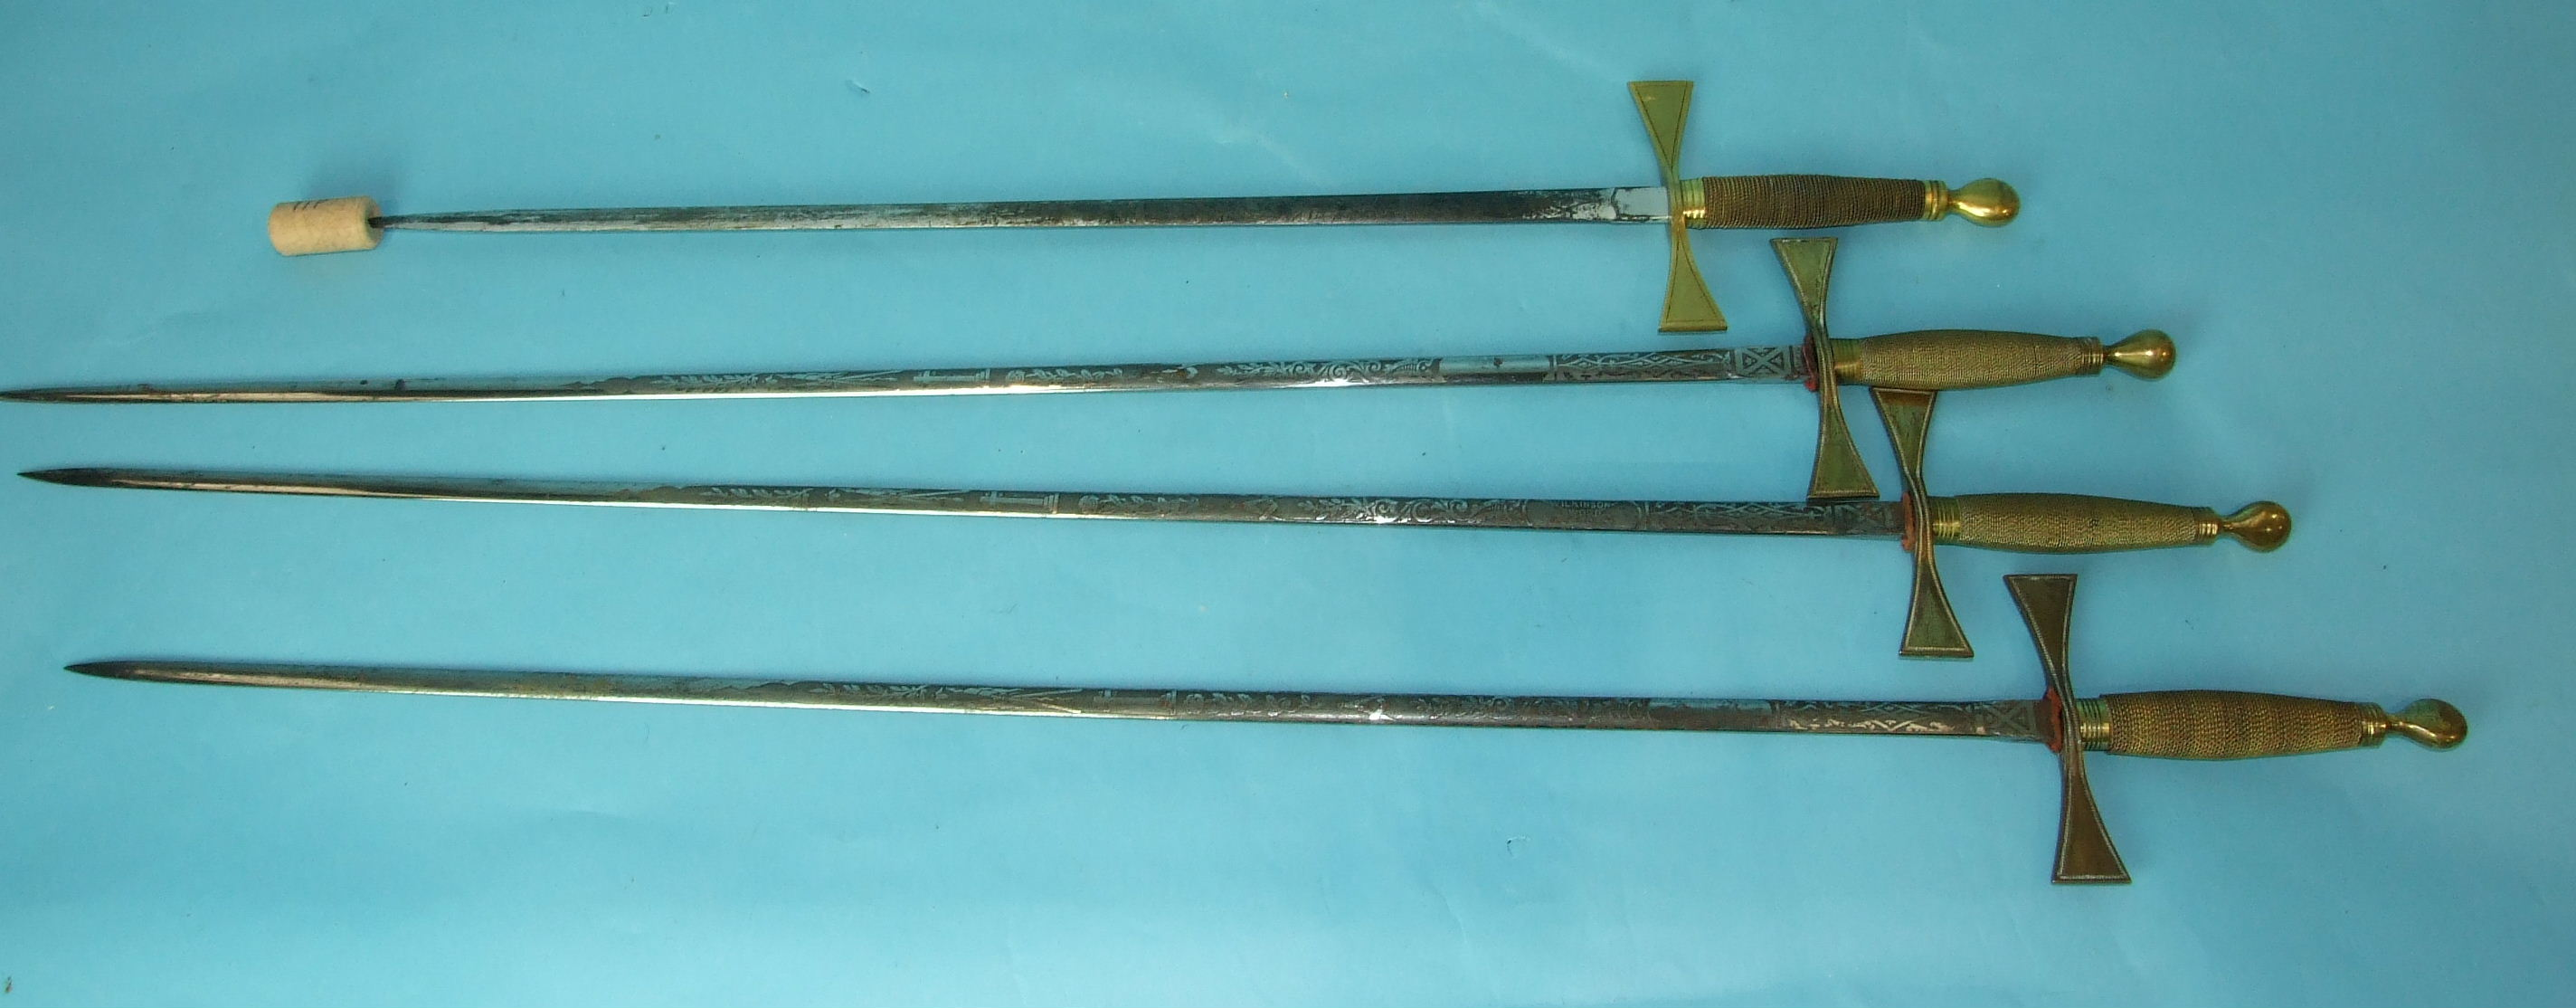 Lot 29 - Four Wilkinson Masonic swords with etched blades and gilt wire-bound grips, (scabbards lacking), (